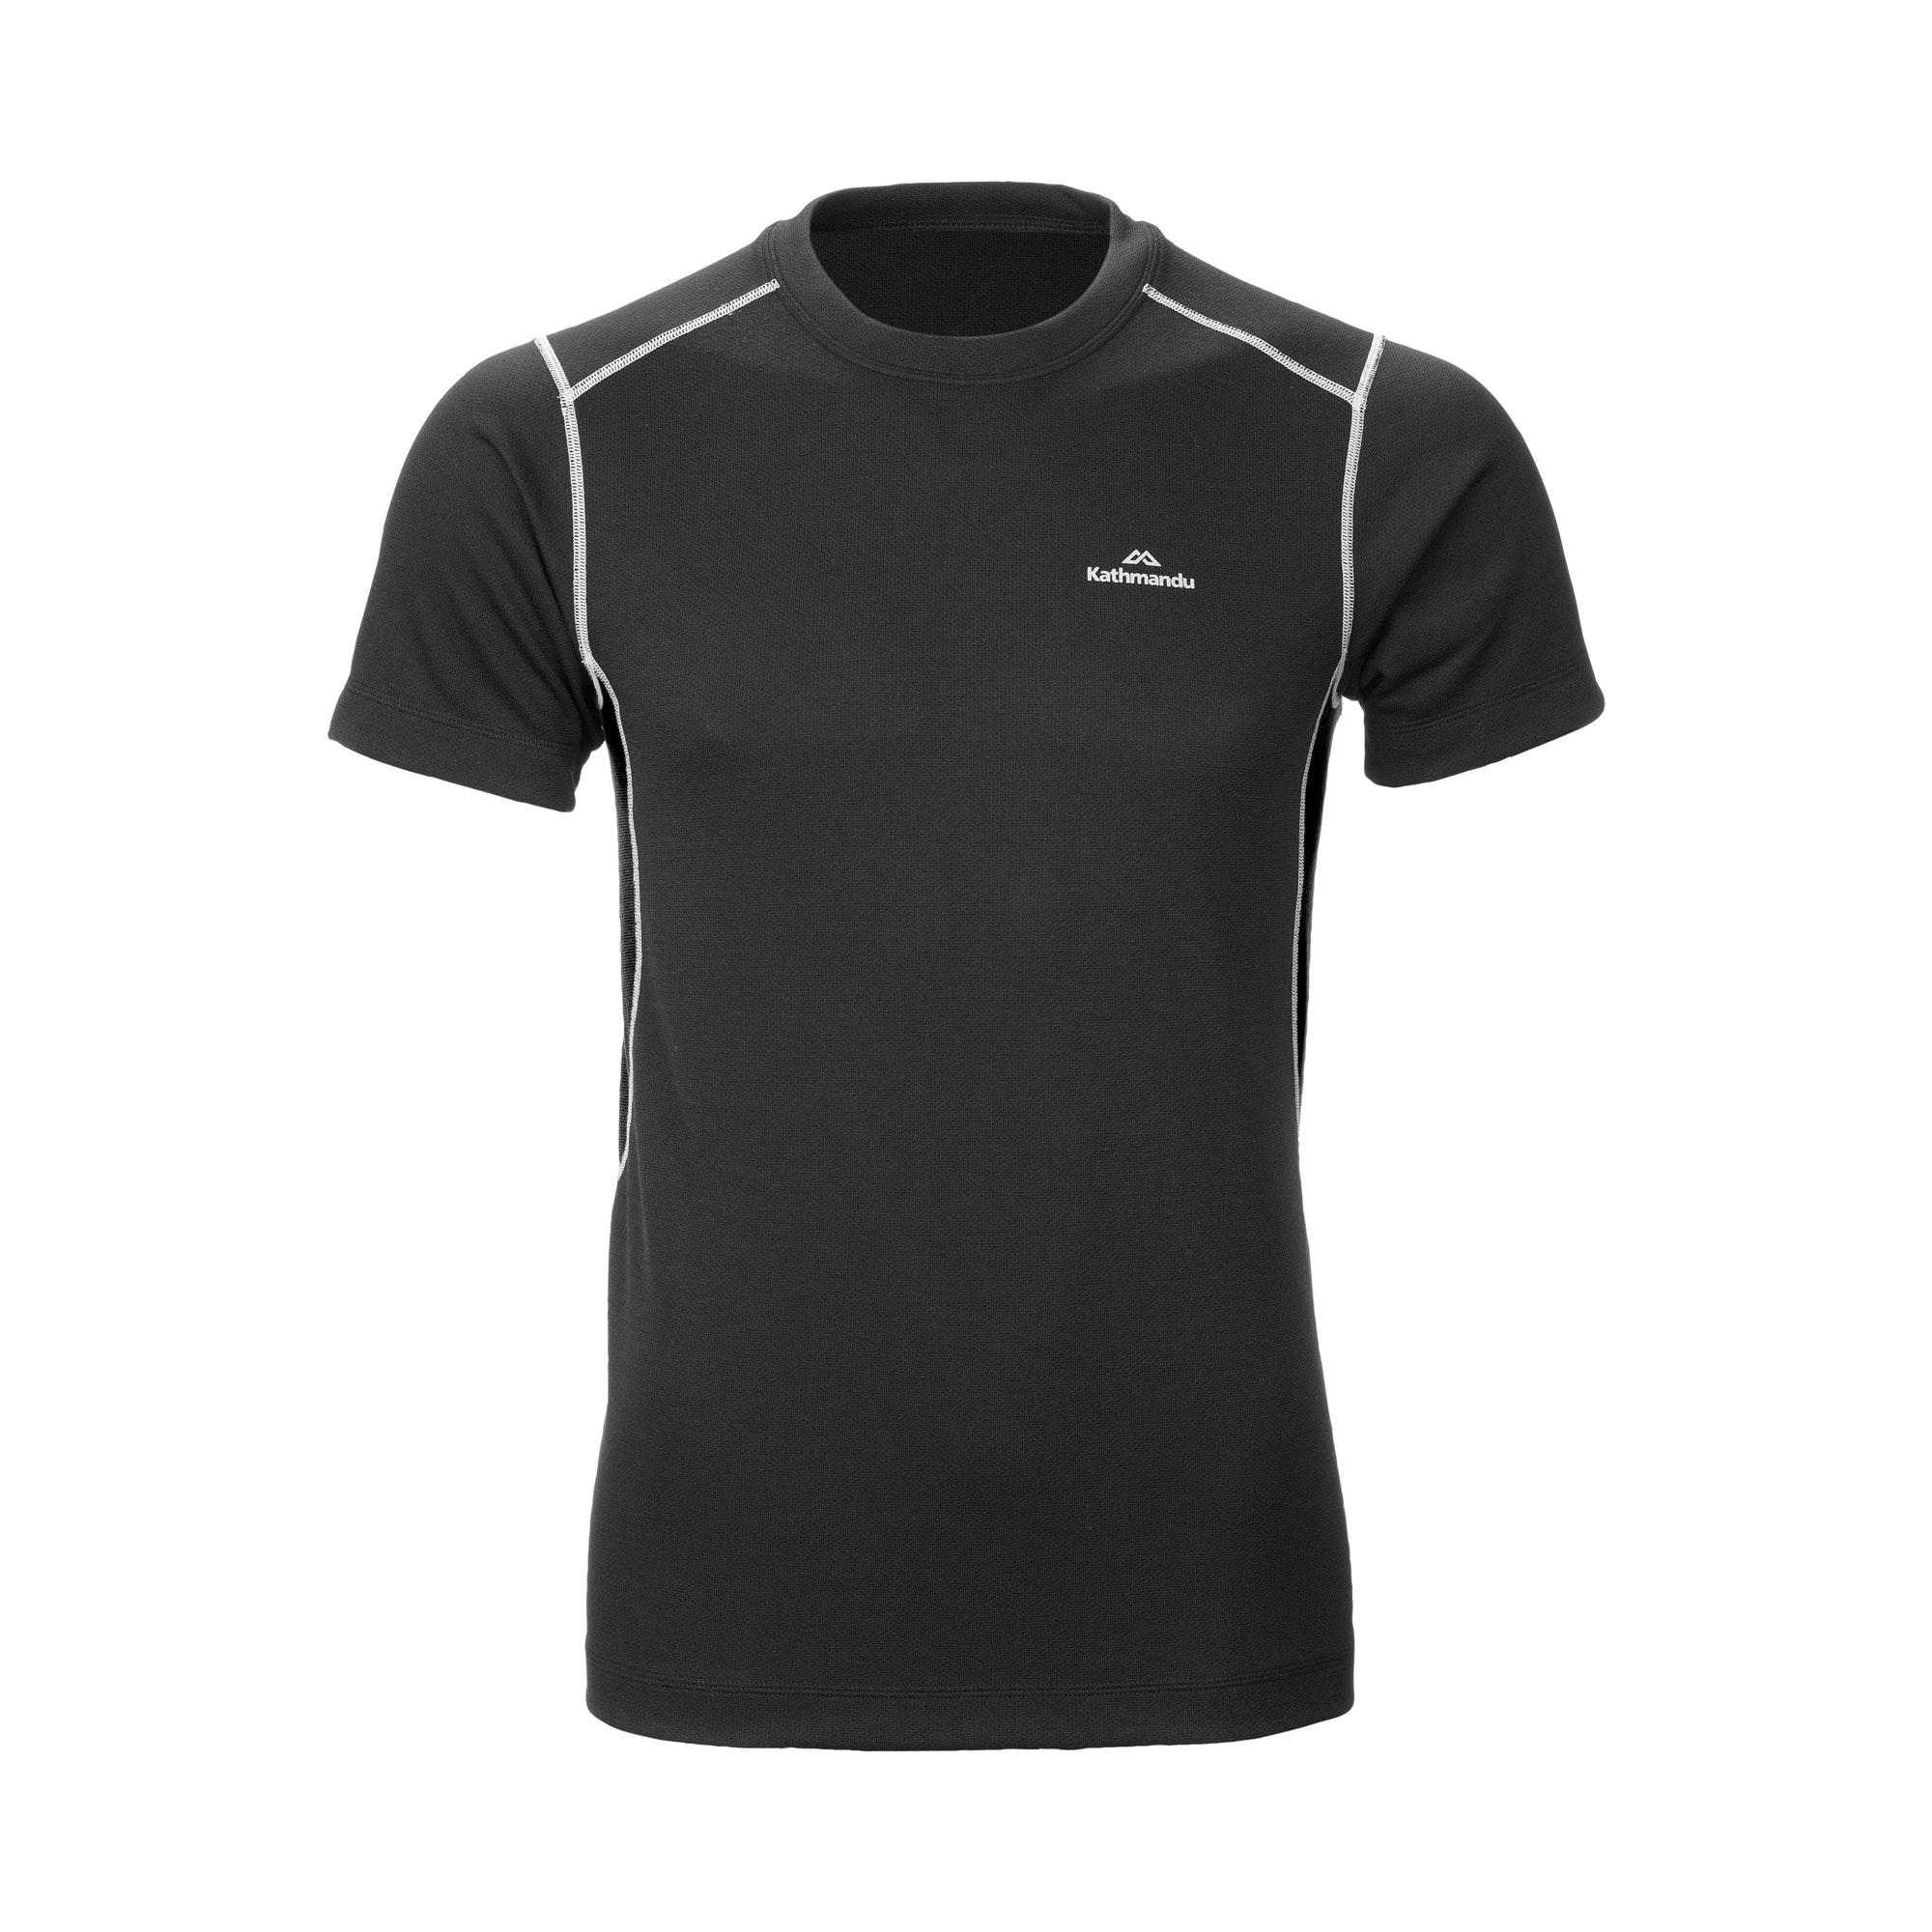 View more of the ThermaPLUS Men's Short Sleeve Top v3